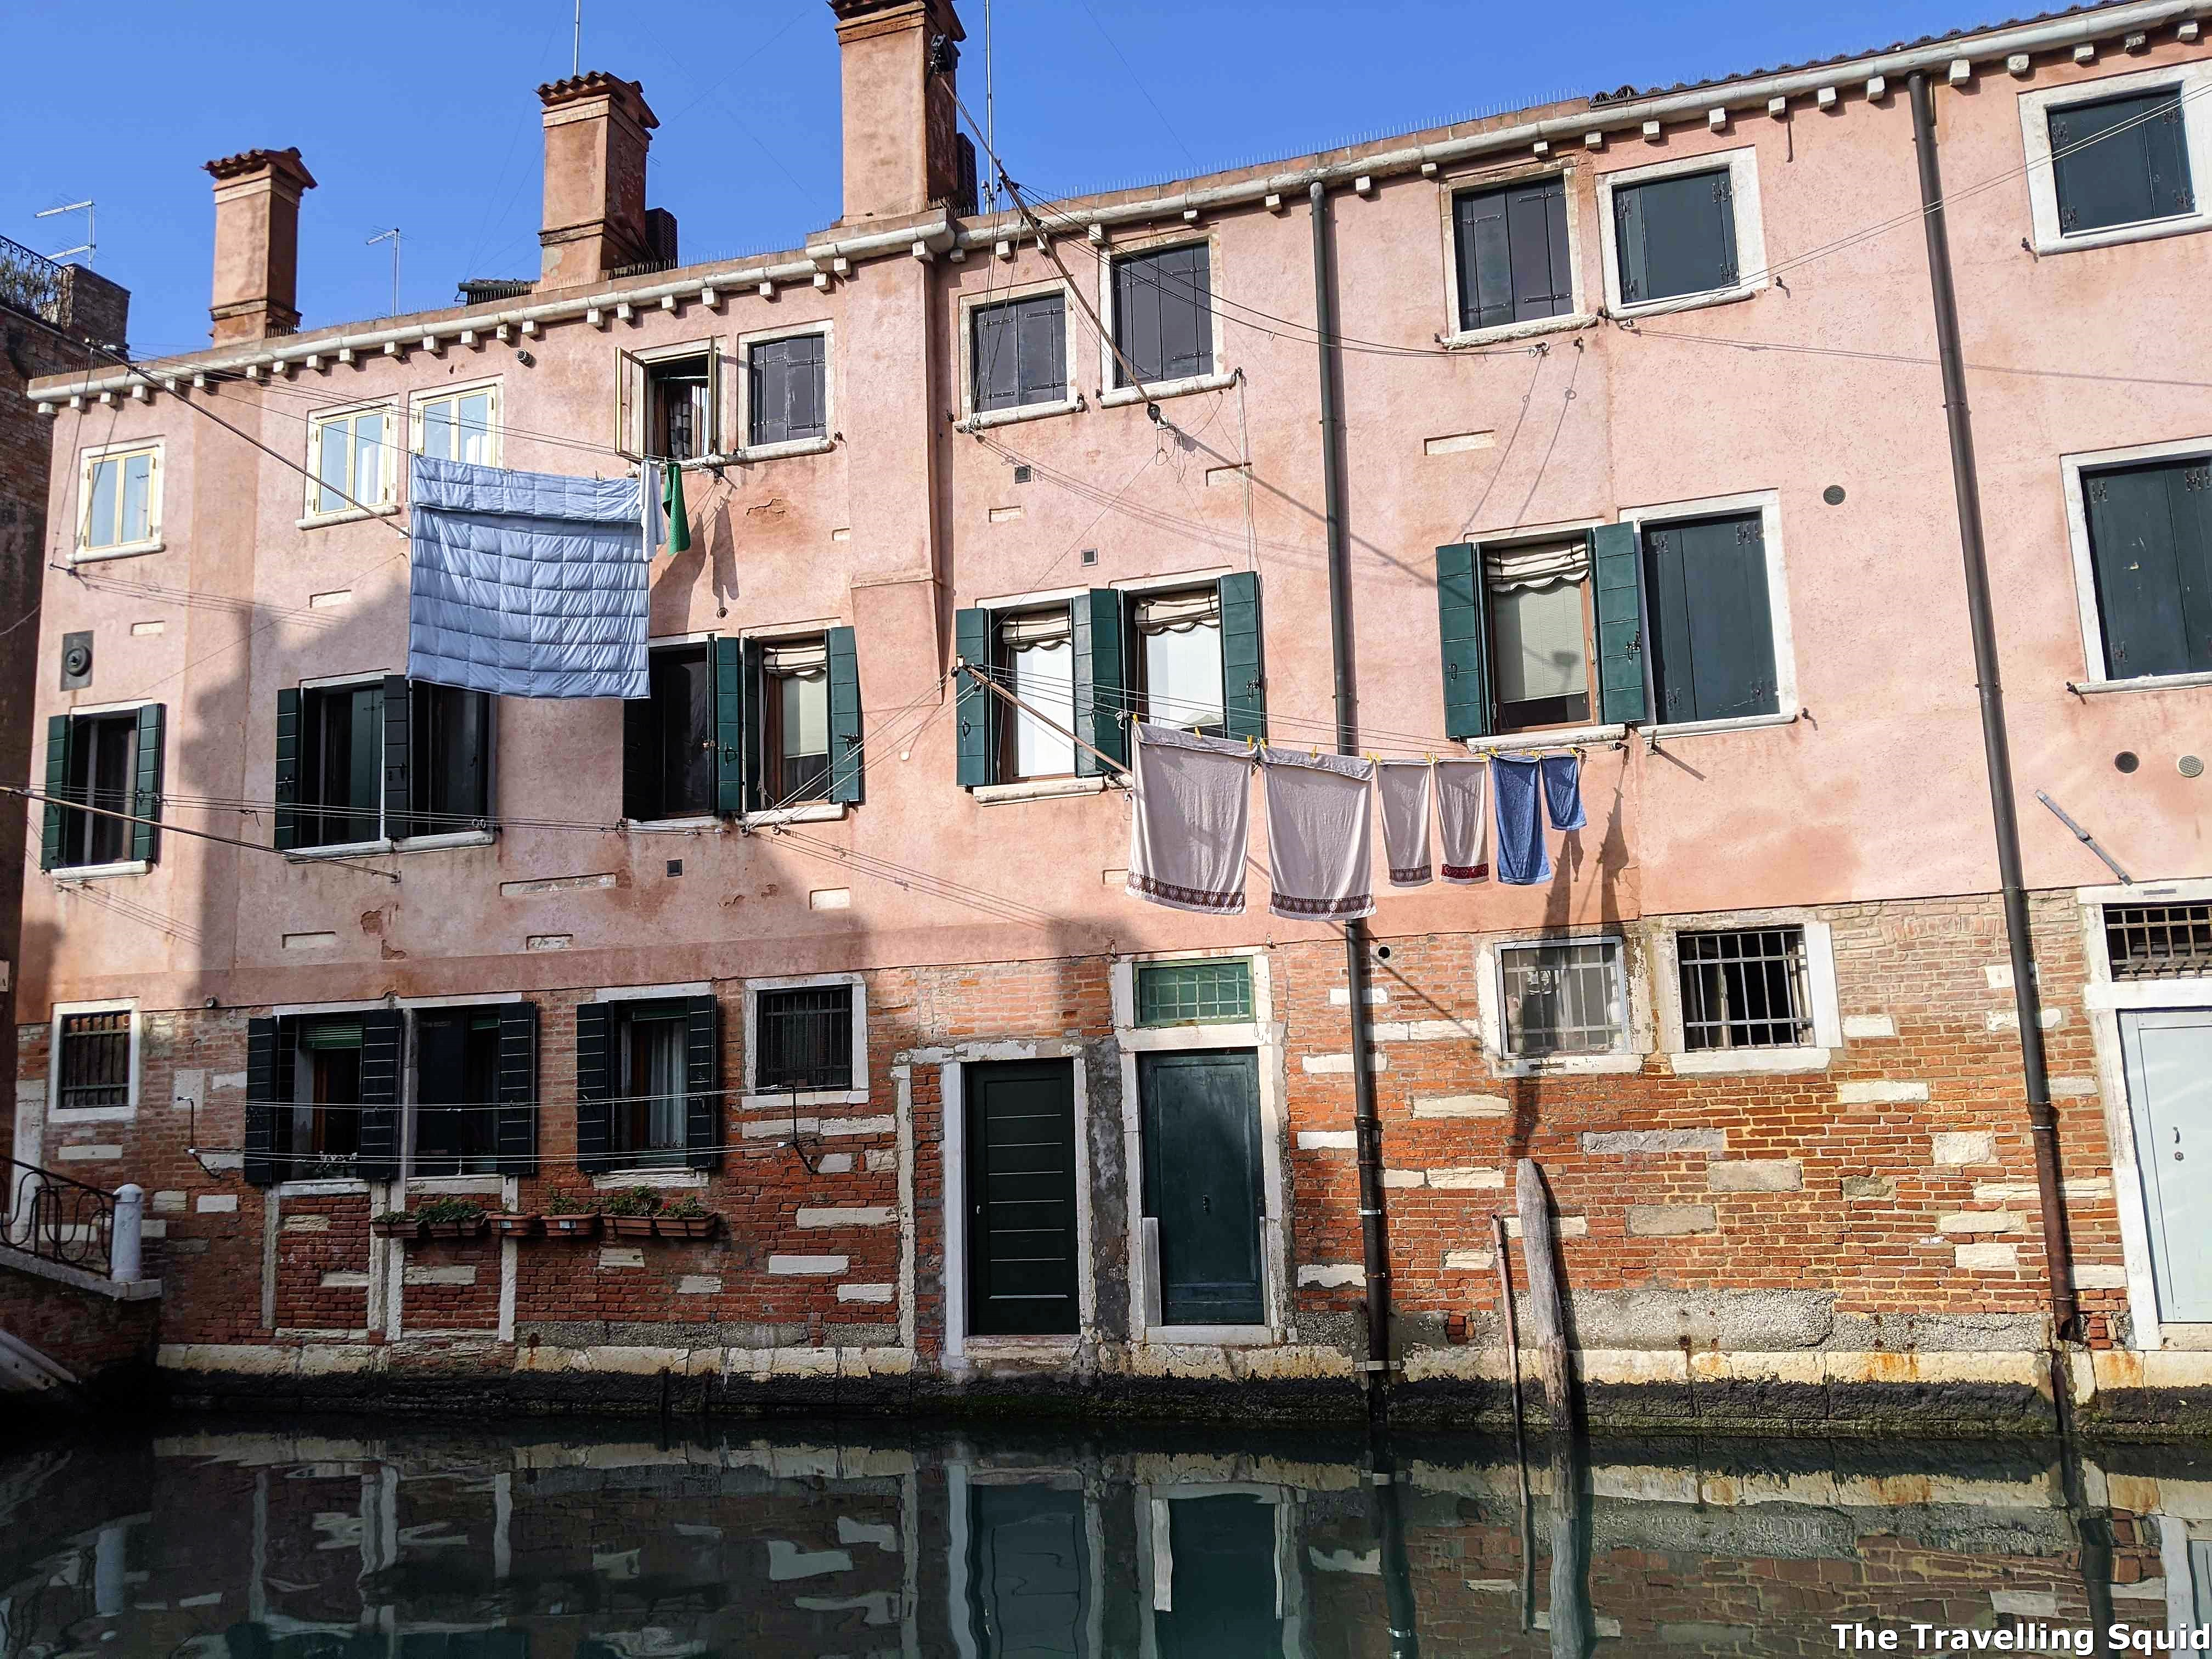 Why are there so many empty buildings in Venice